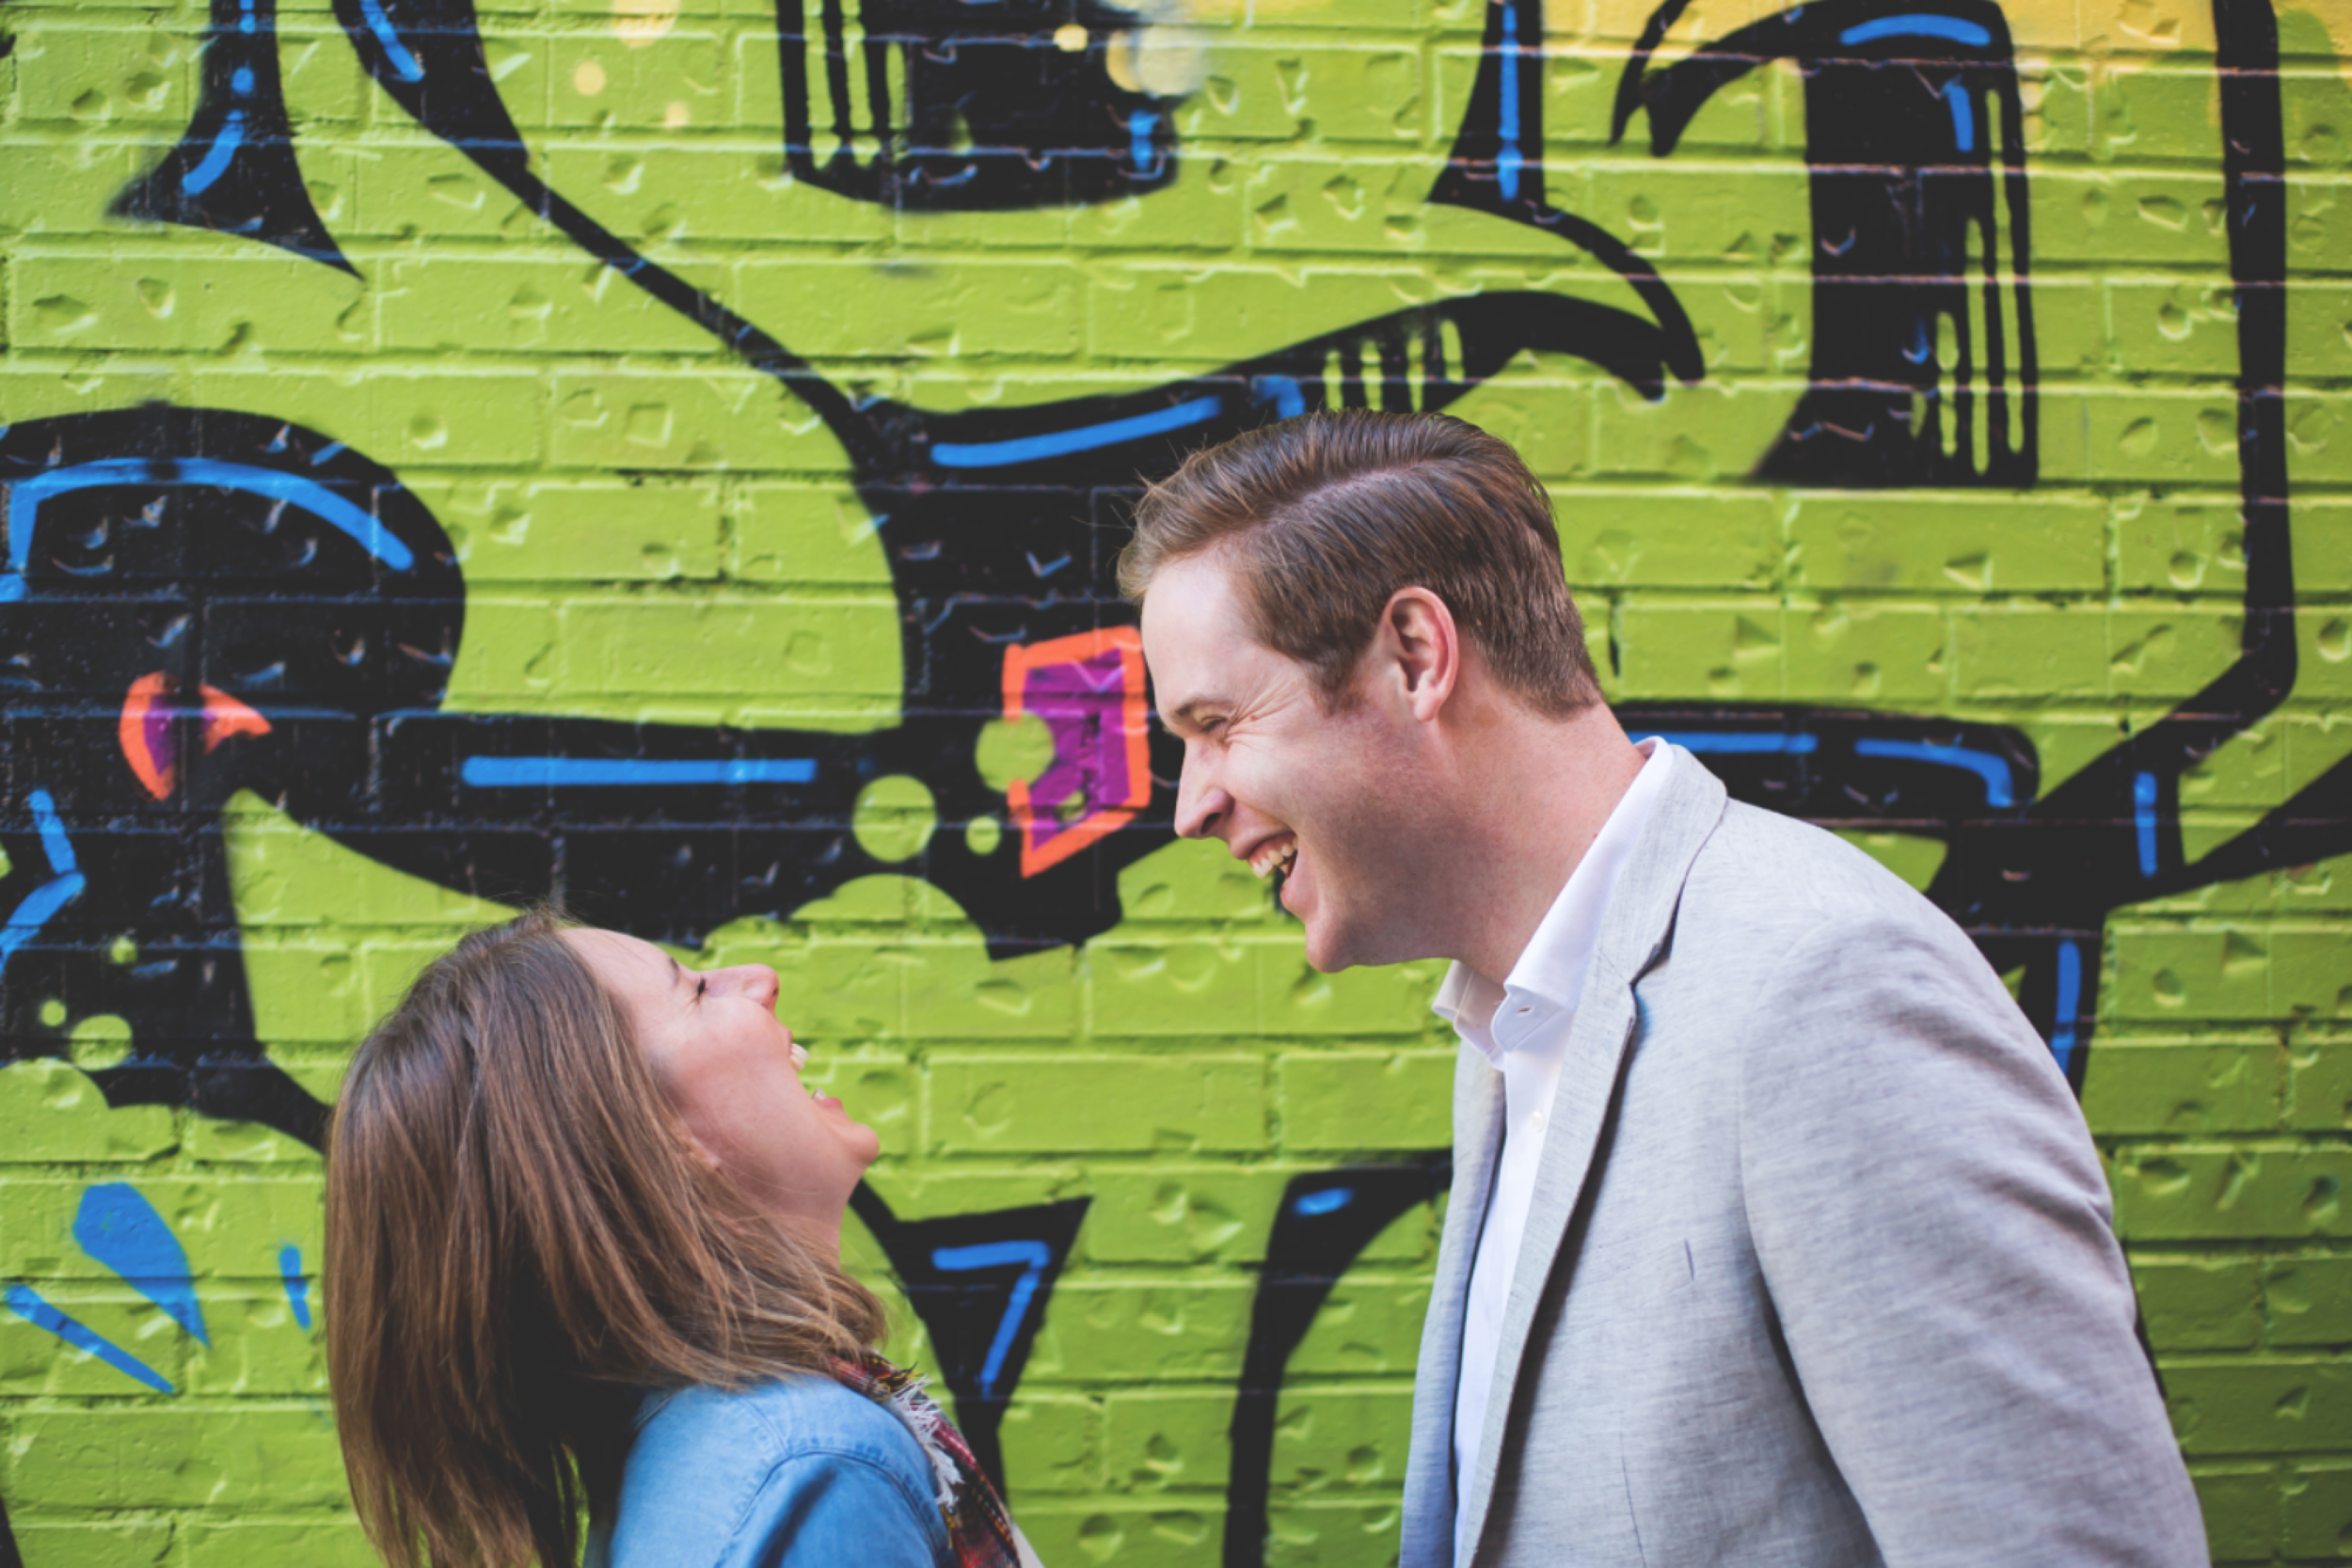 Engagement-Session-Hamilton-Burlington-Oakville-Niagara-Toronto-Wedding-Photographer-Engaged-Photography-Urban-Engaged-Downtown-Golden-Hour-Moments-by-Lauren-Photo-Image-13.png